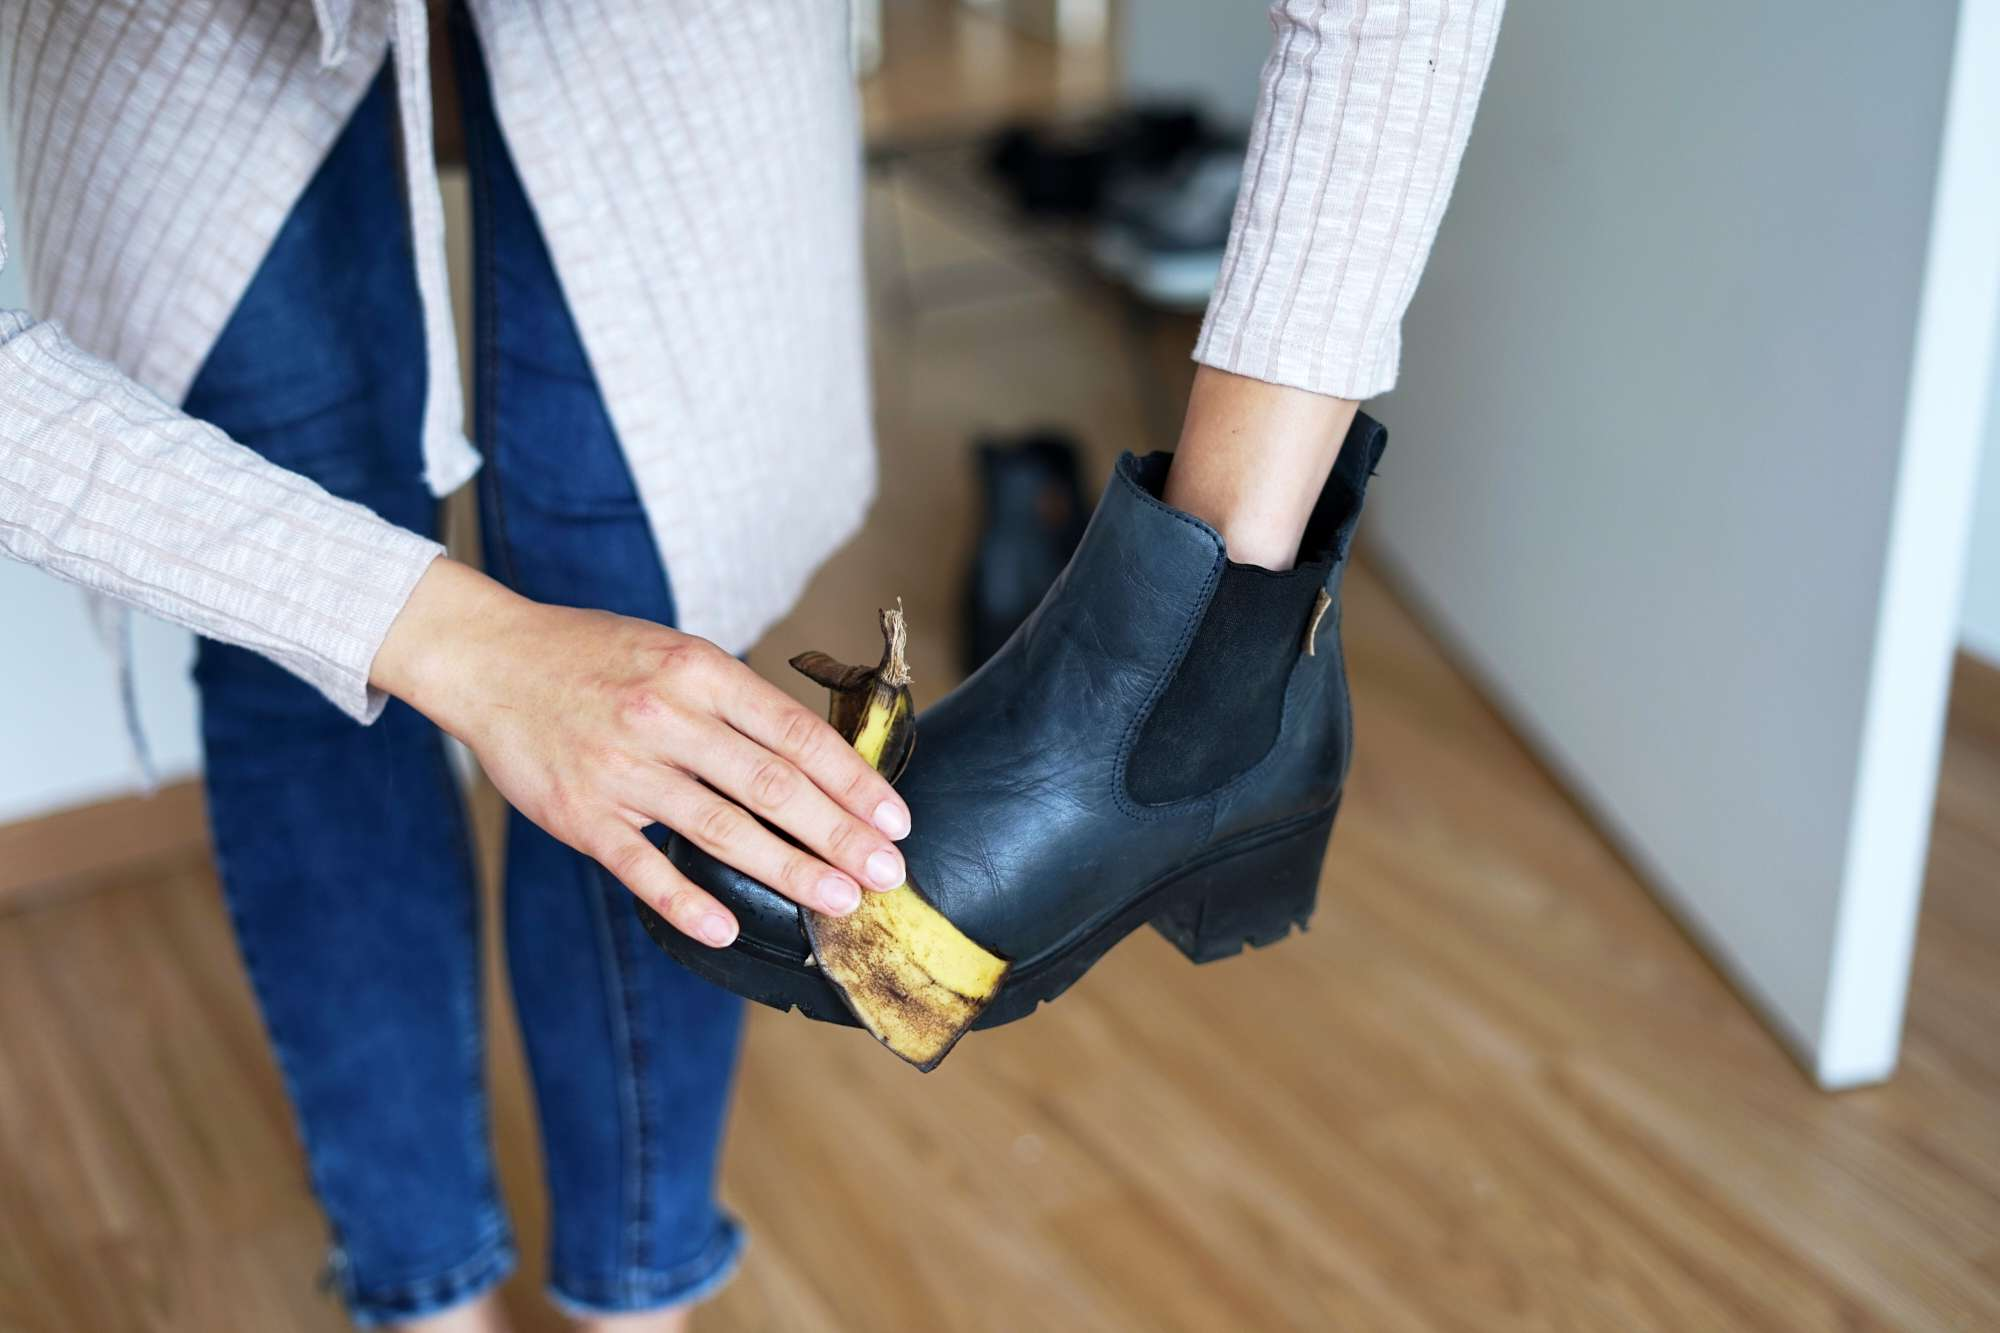 standing person rubs and polishes black leather boots down with bruised banana peel